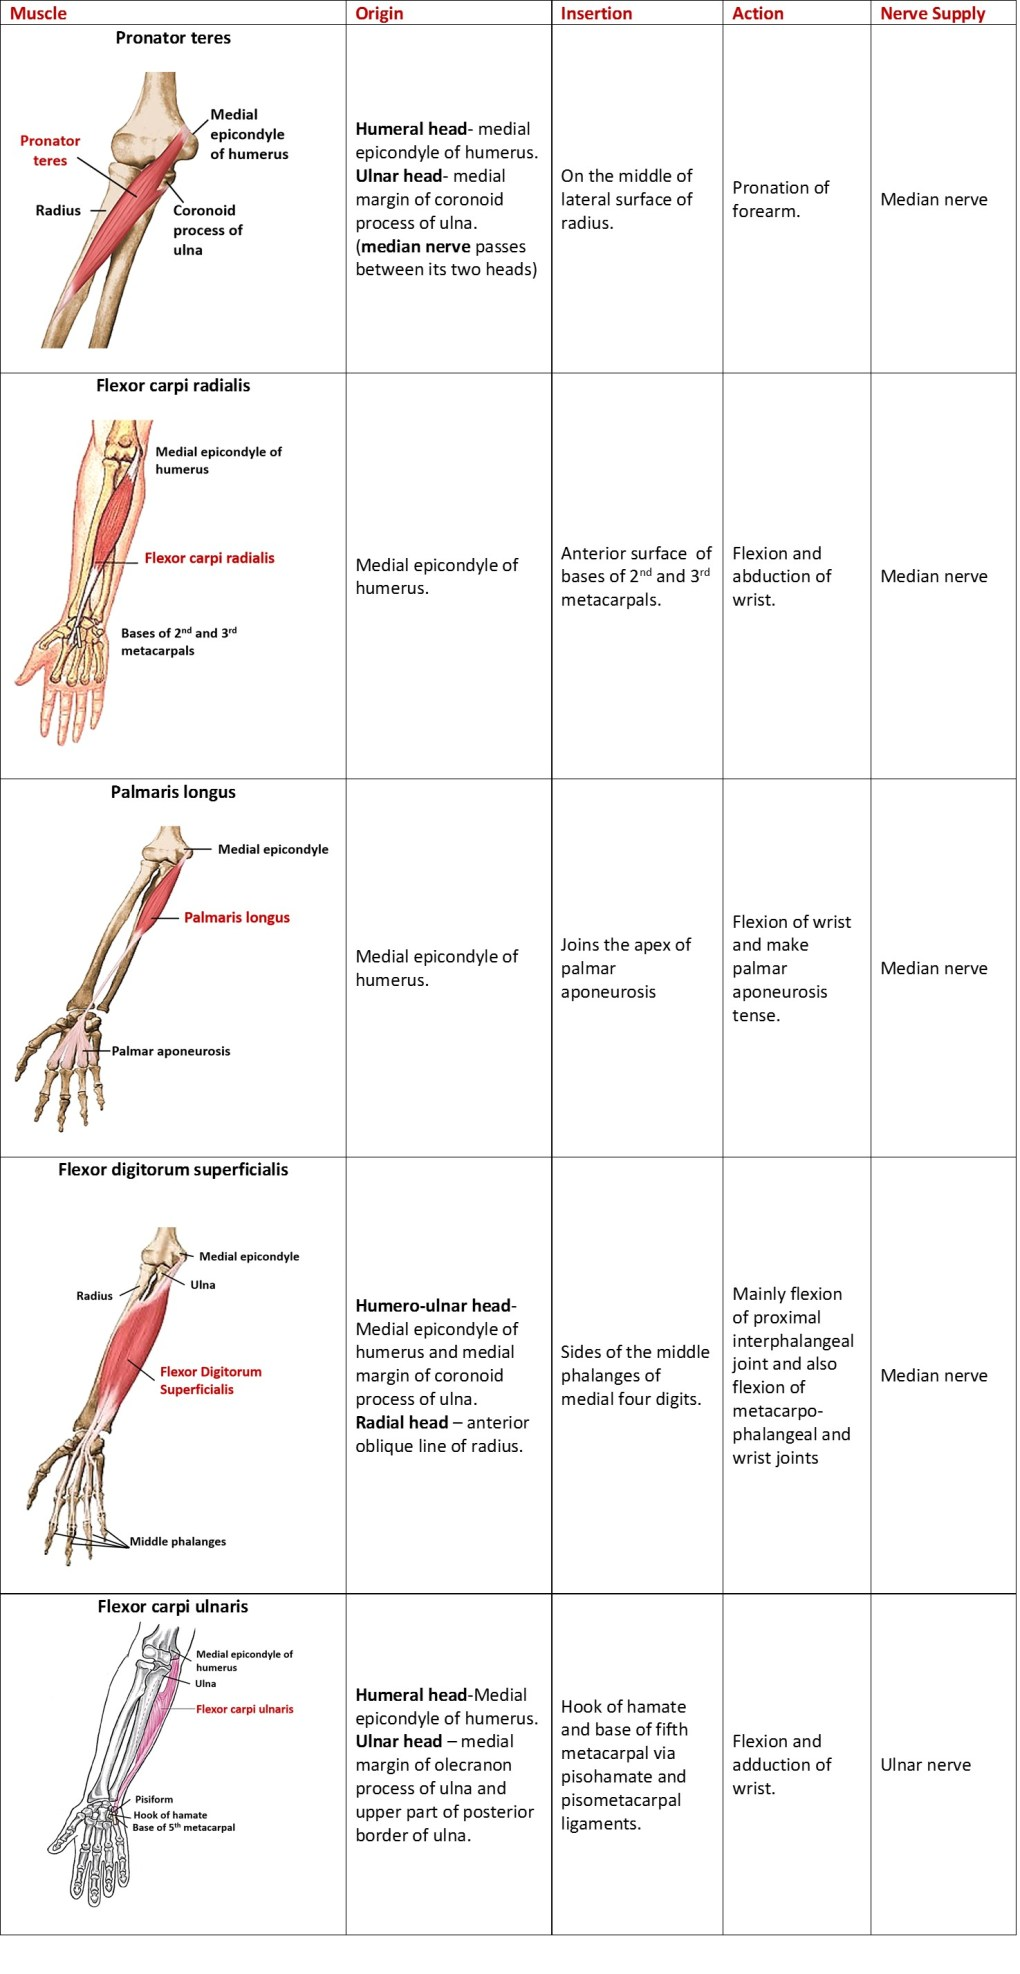 muscles of superficial compartment of forearm